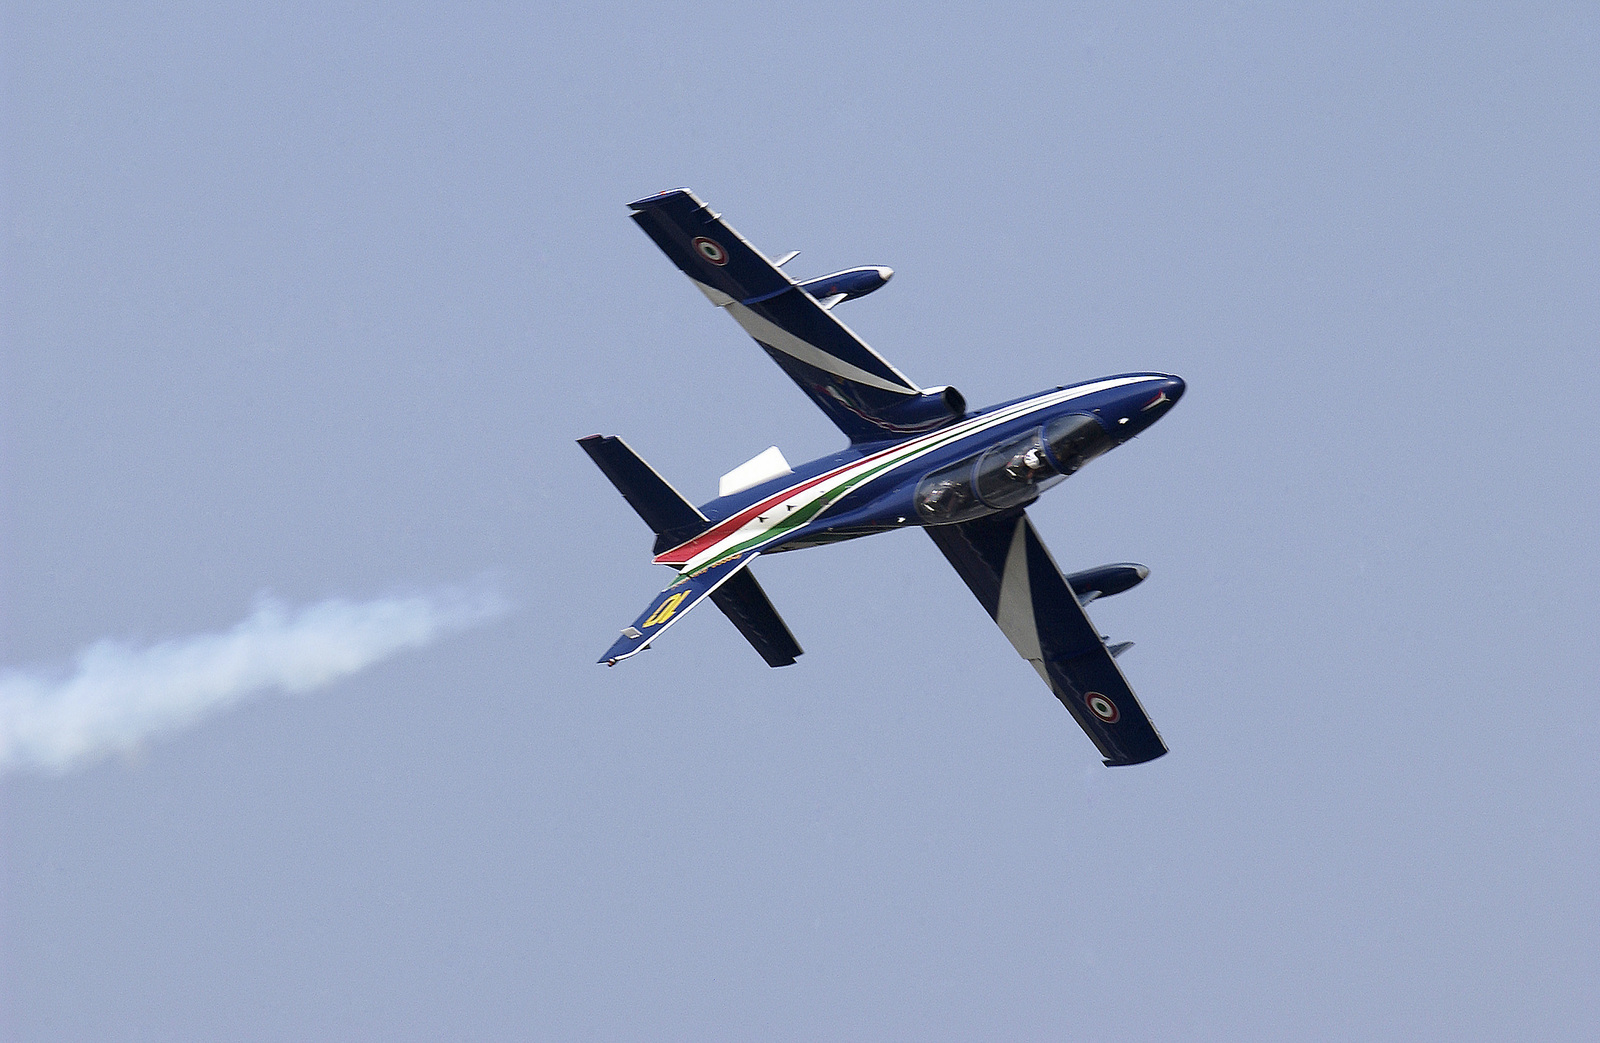 """The Italian National Aerobatics team called """"Frecce Tricolore"""" performs a mini air show for the United States Air Force (USAF) personnel at Aviano Air Base, including this solo performance, prior to their scheduled performance"""